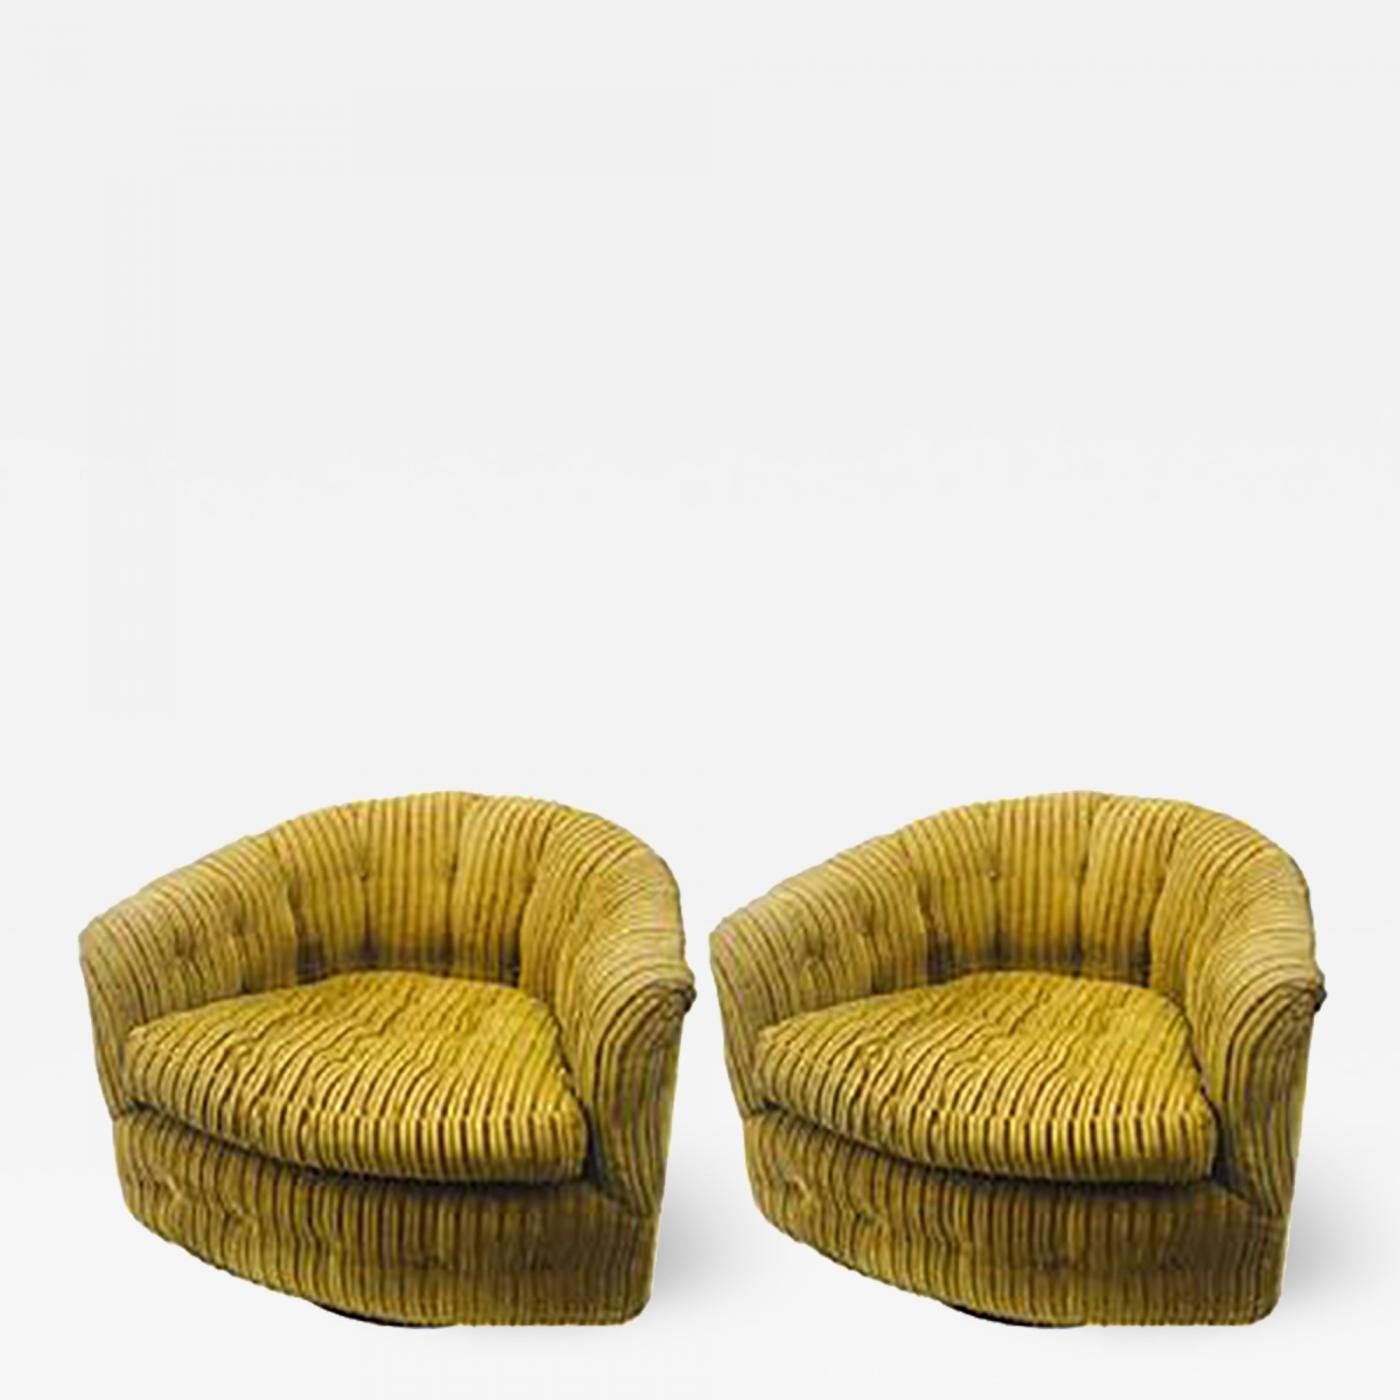 Swivel Tub Chair Milo Baughman Midcentury Pair Of Milo Baughman Swivel Barrel Back Tub Chairs